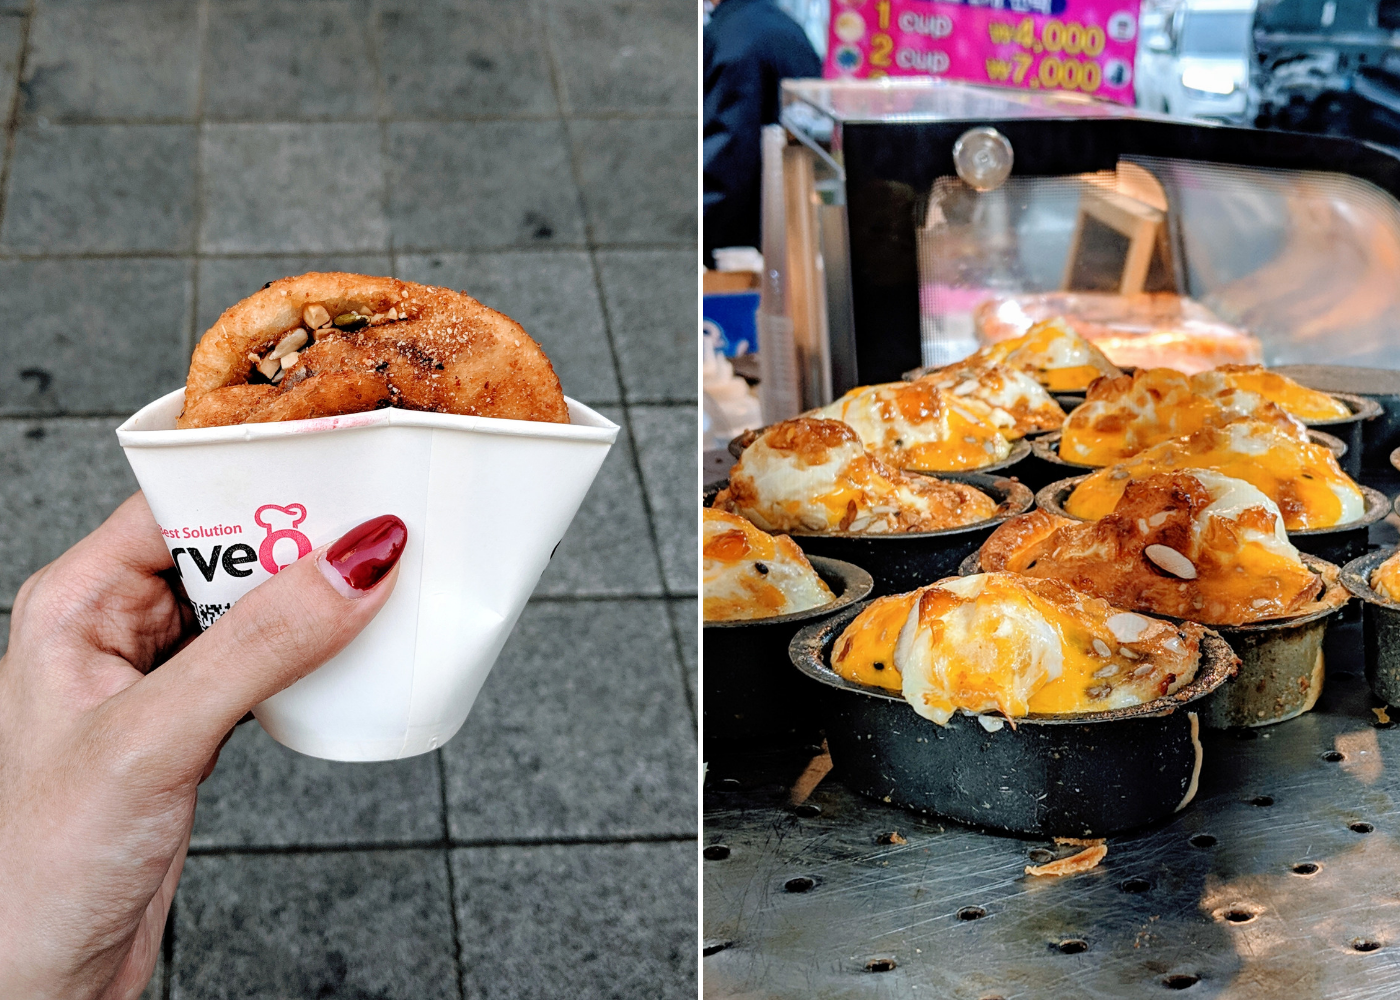 Left: Korean sweet pancake, right: egg bread.